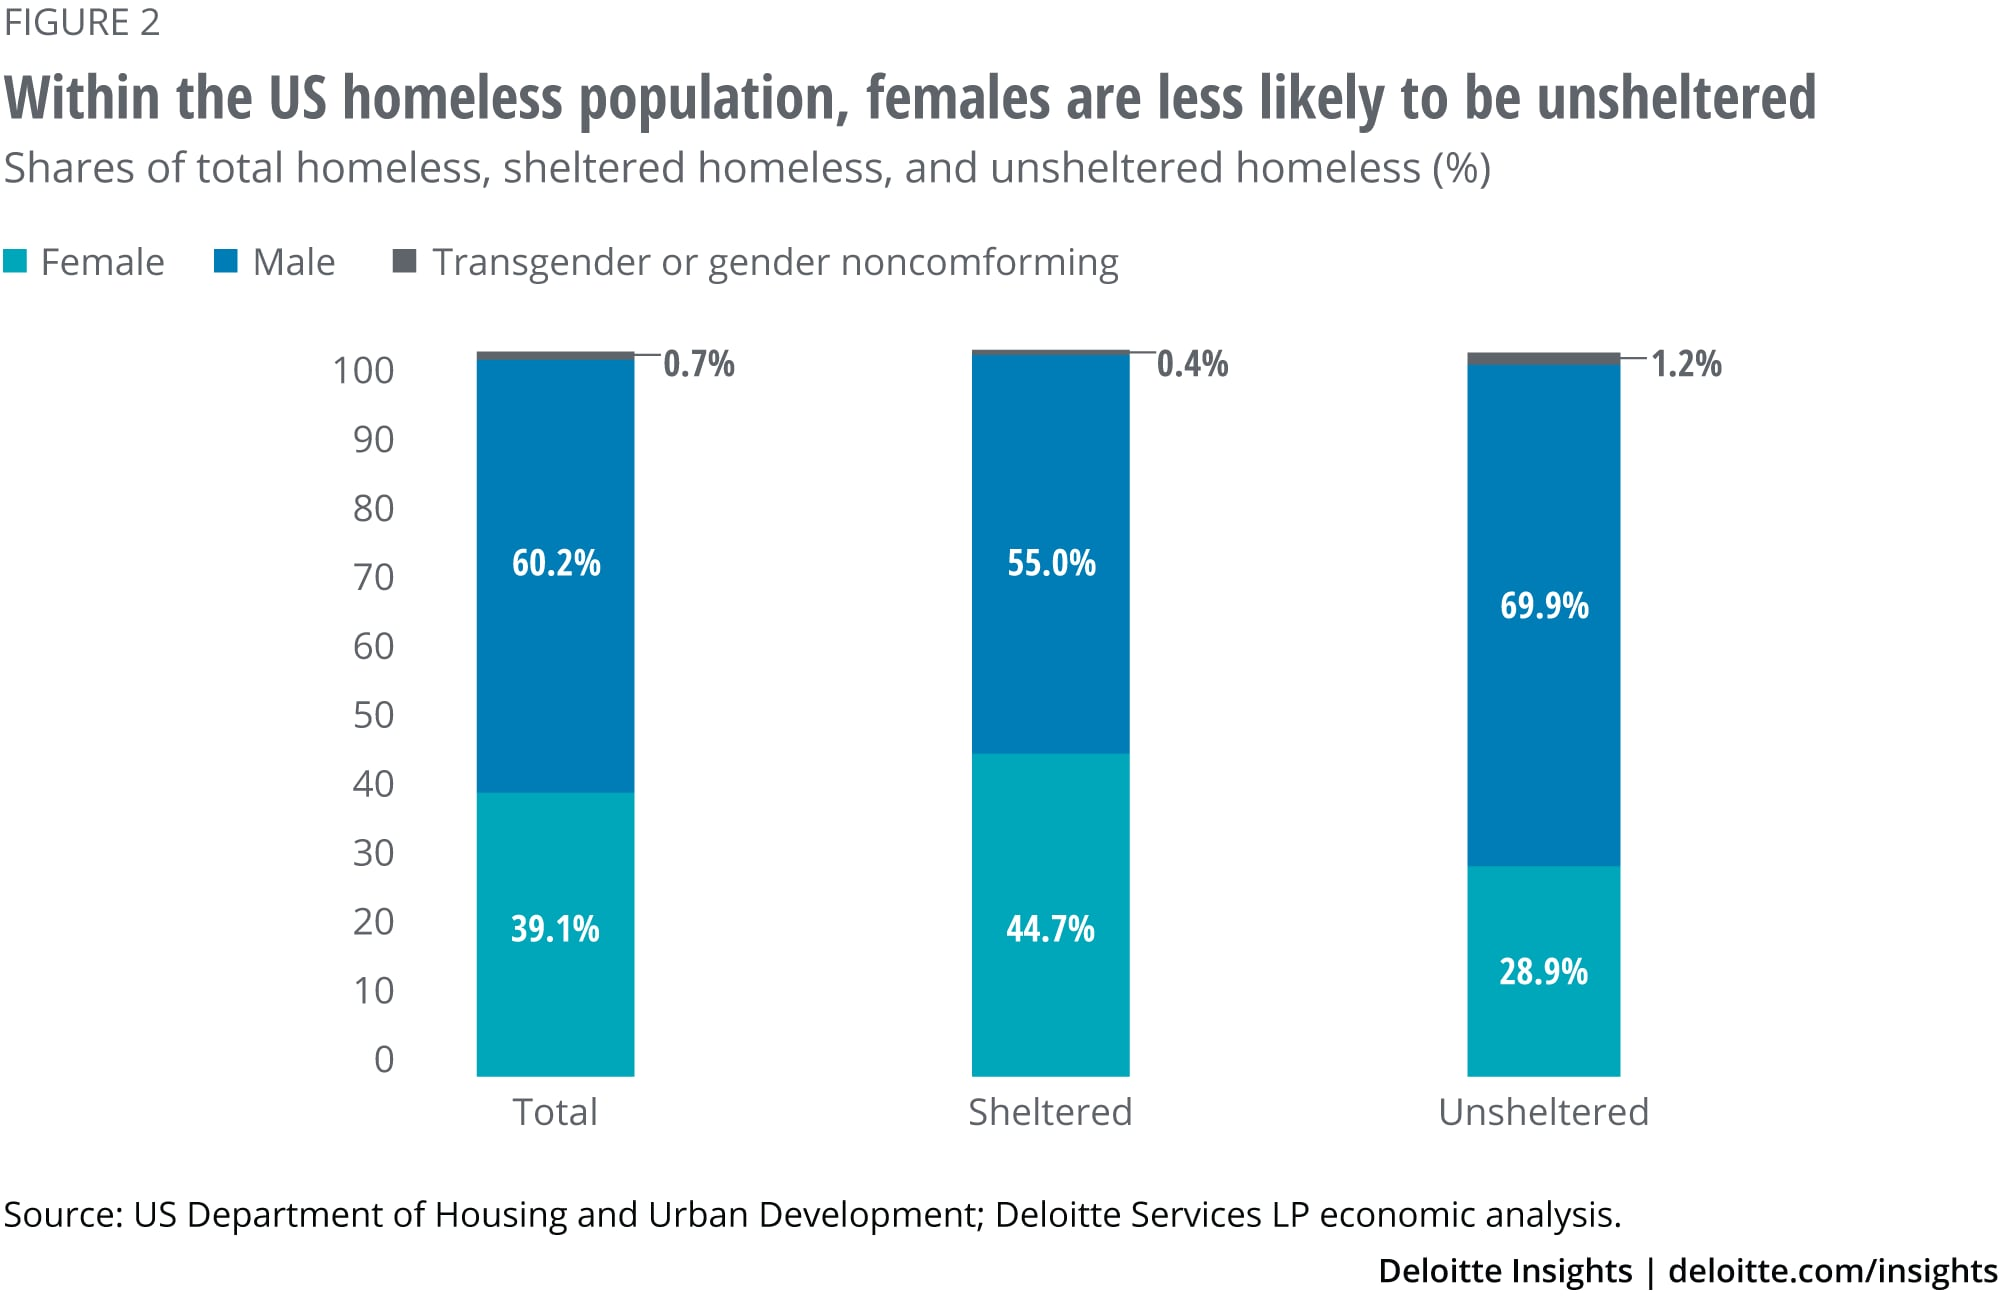 Within the US homeless population, females are less likely to be unsheltered